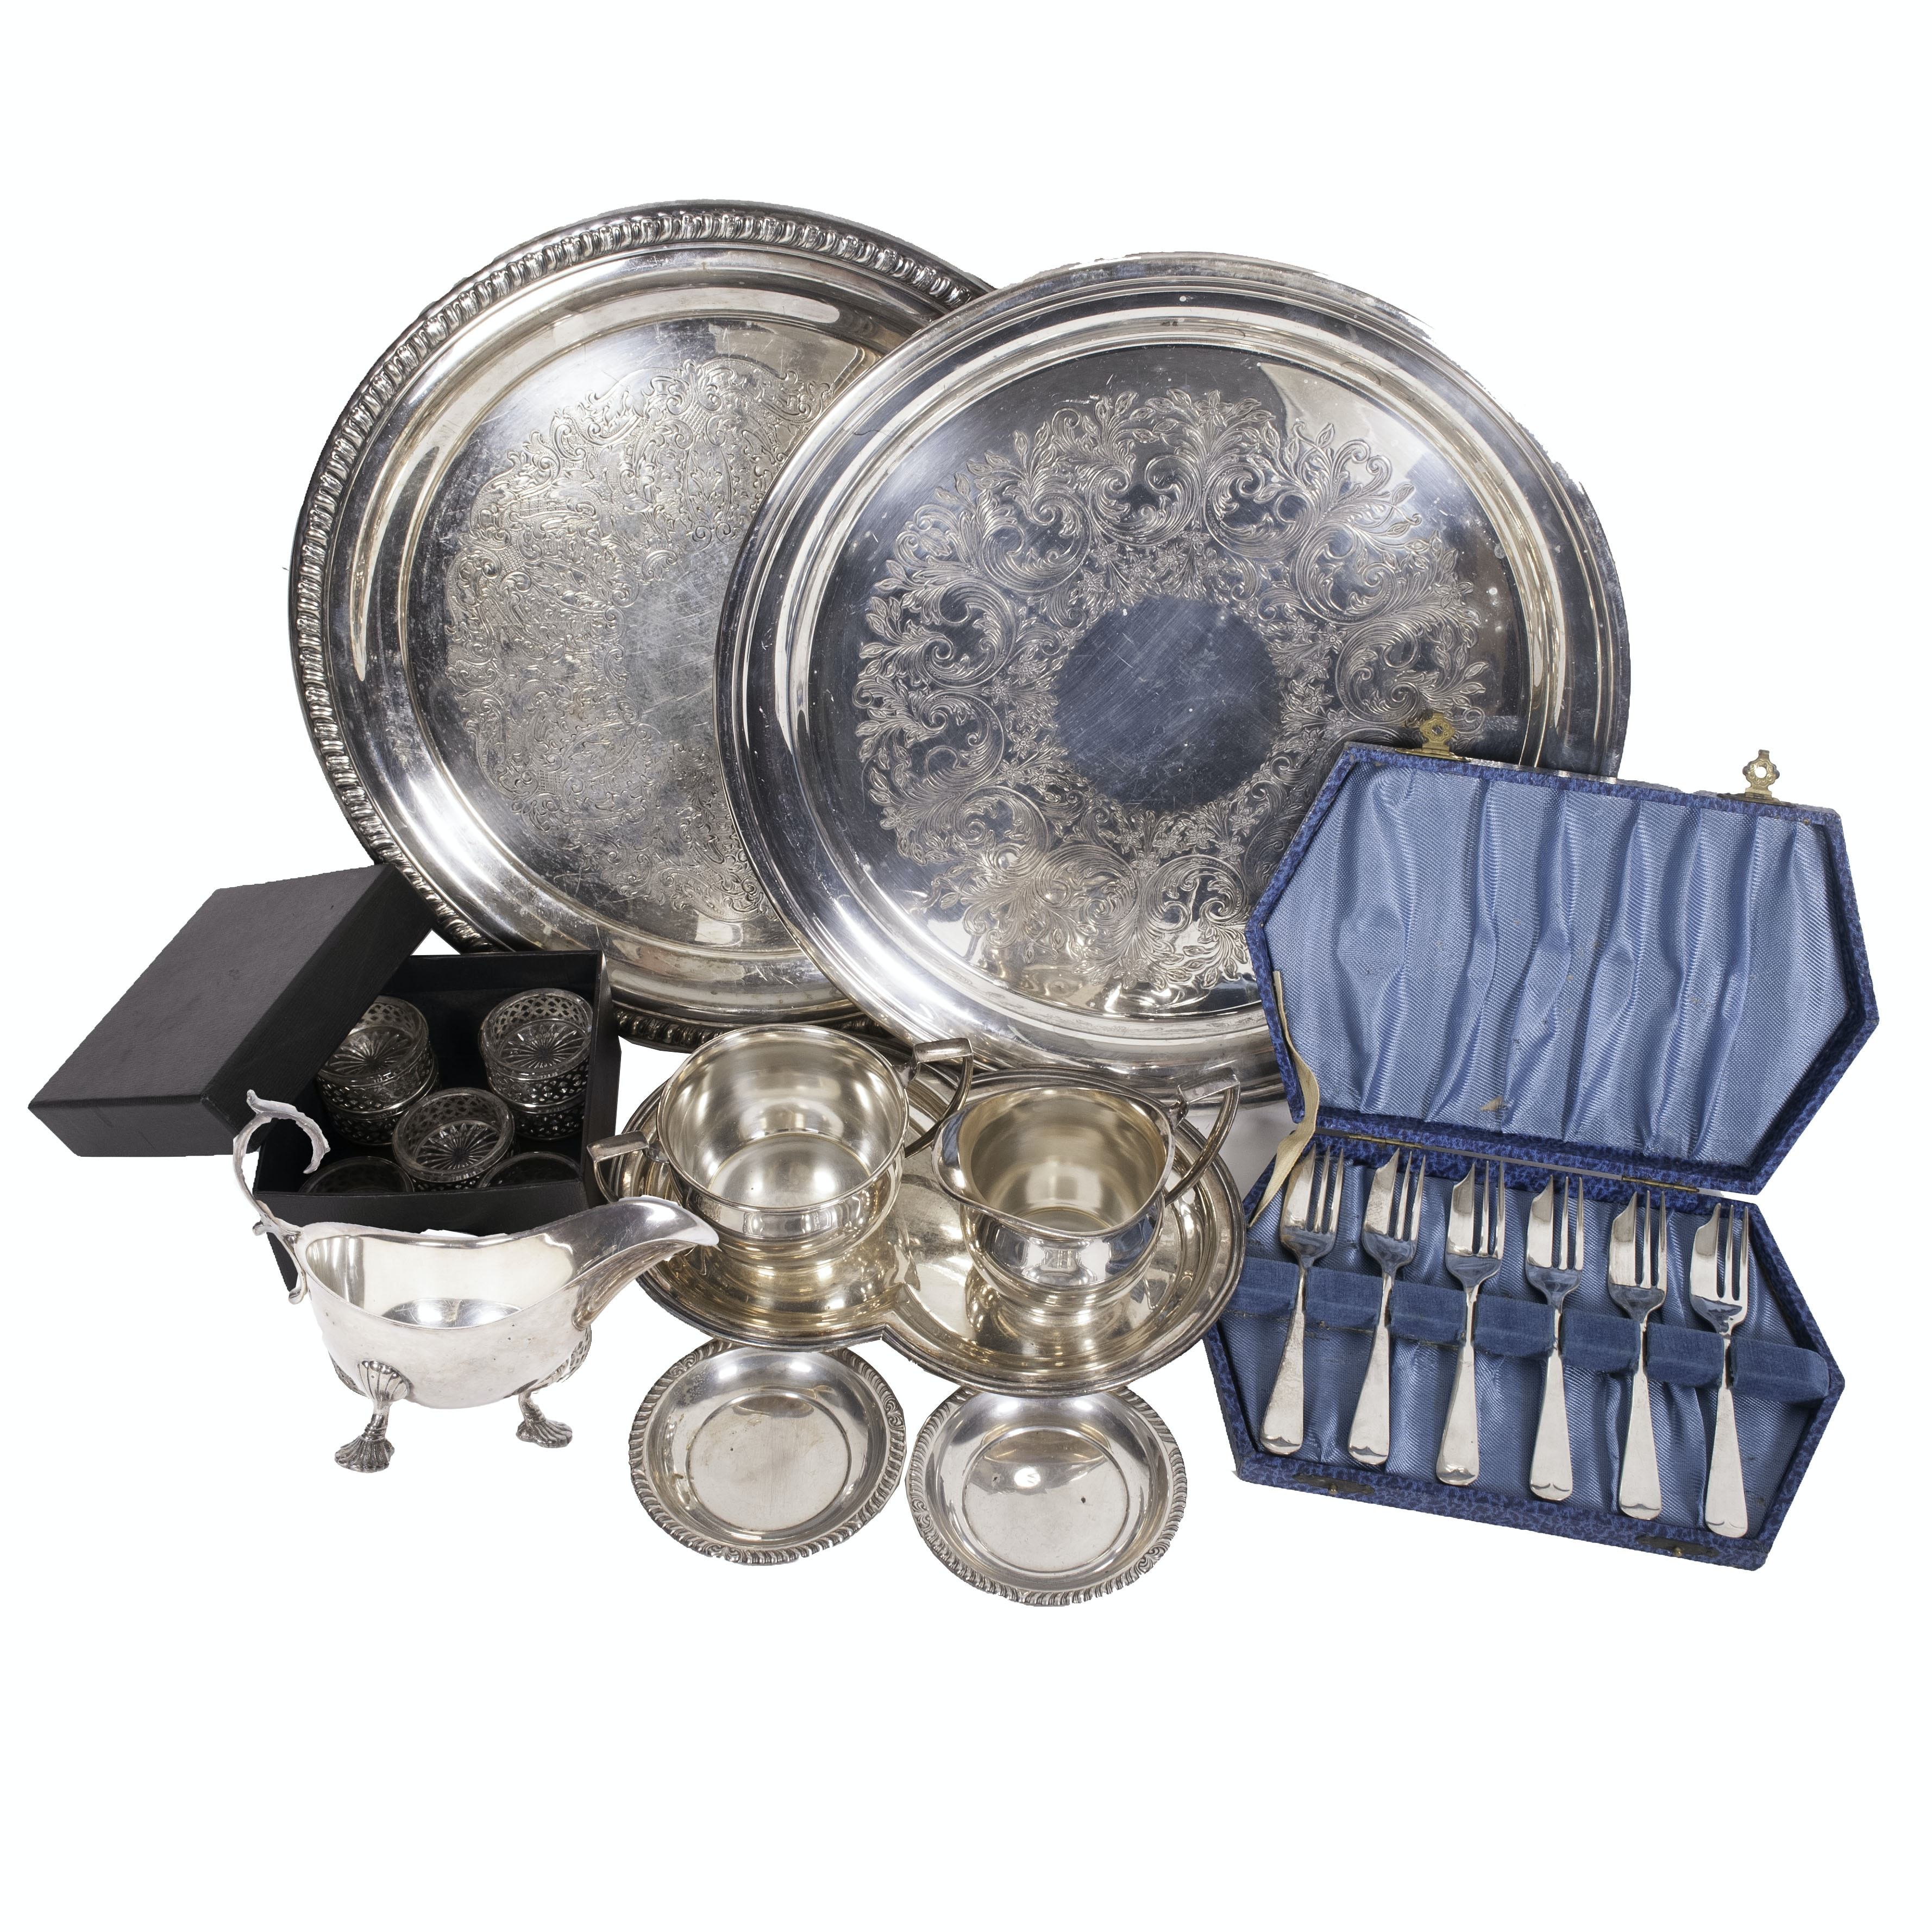 Wallace Silver Plate Tray and Other Silver Plate Serveware